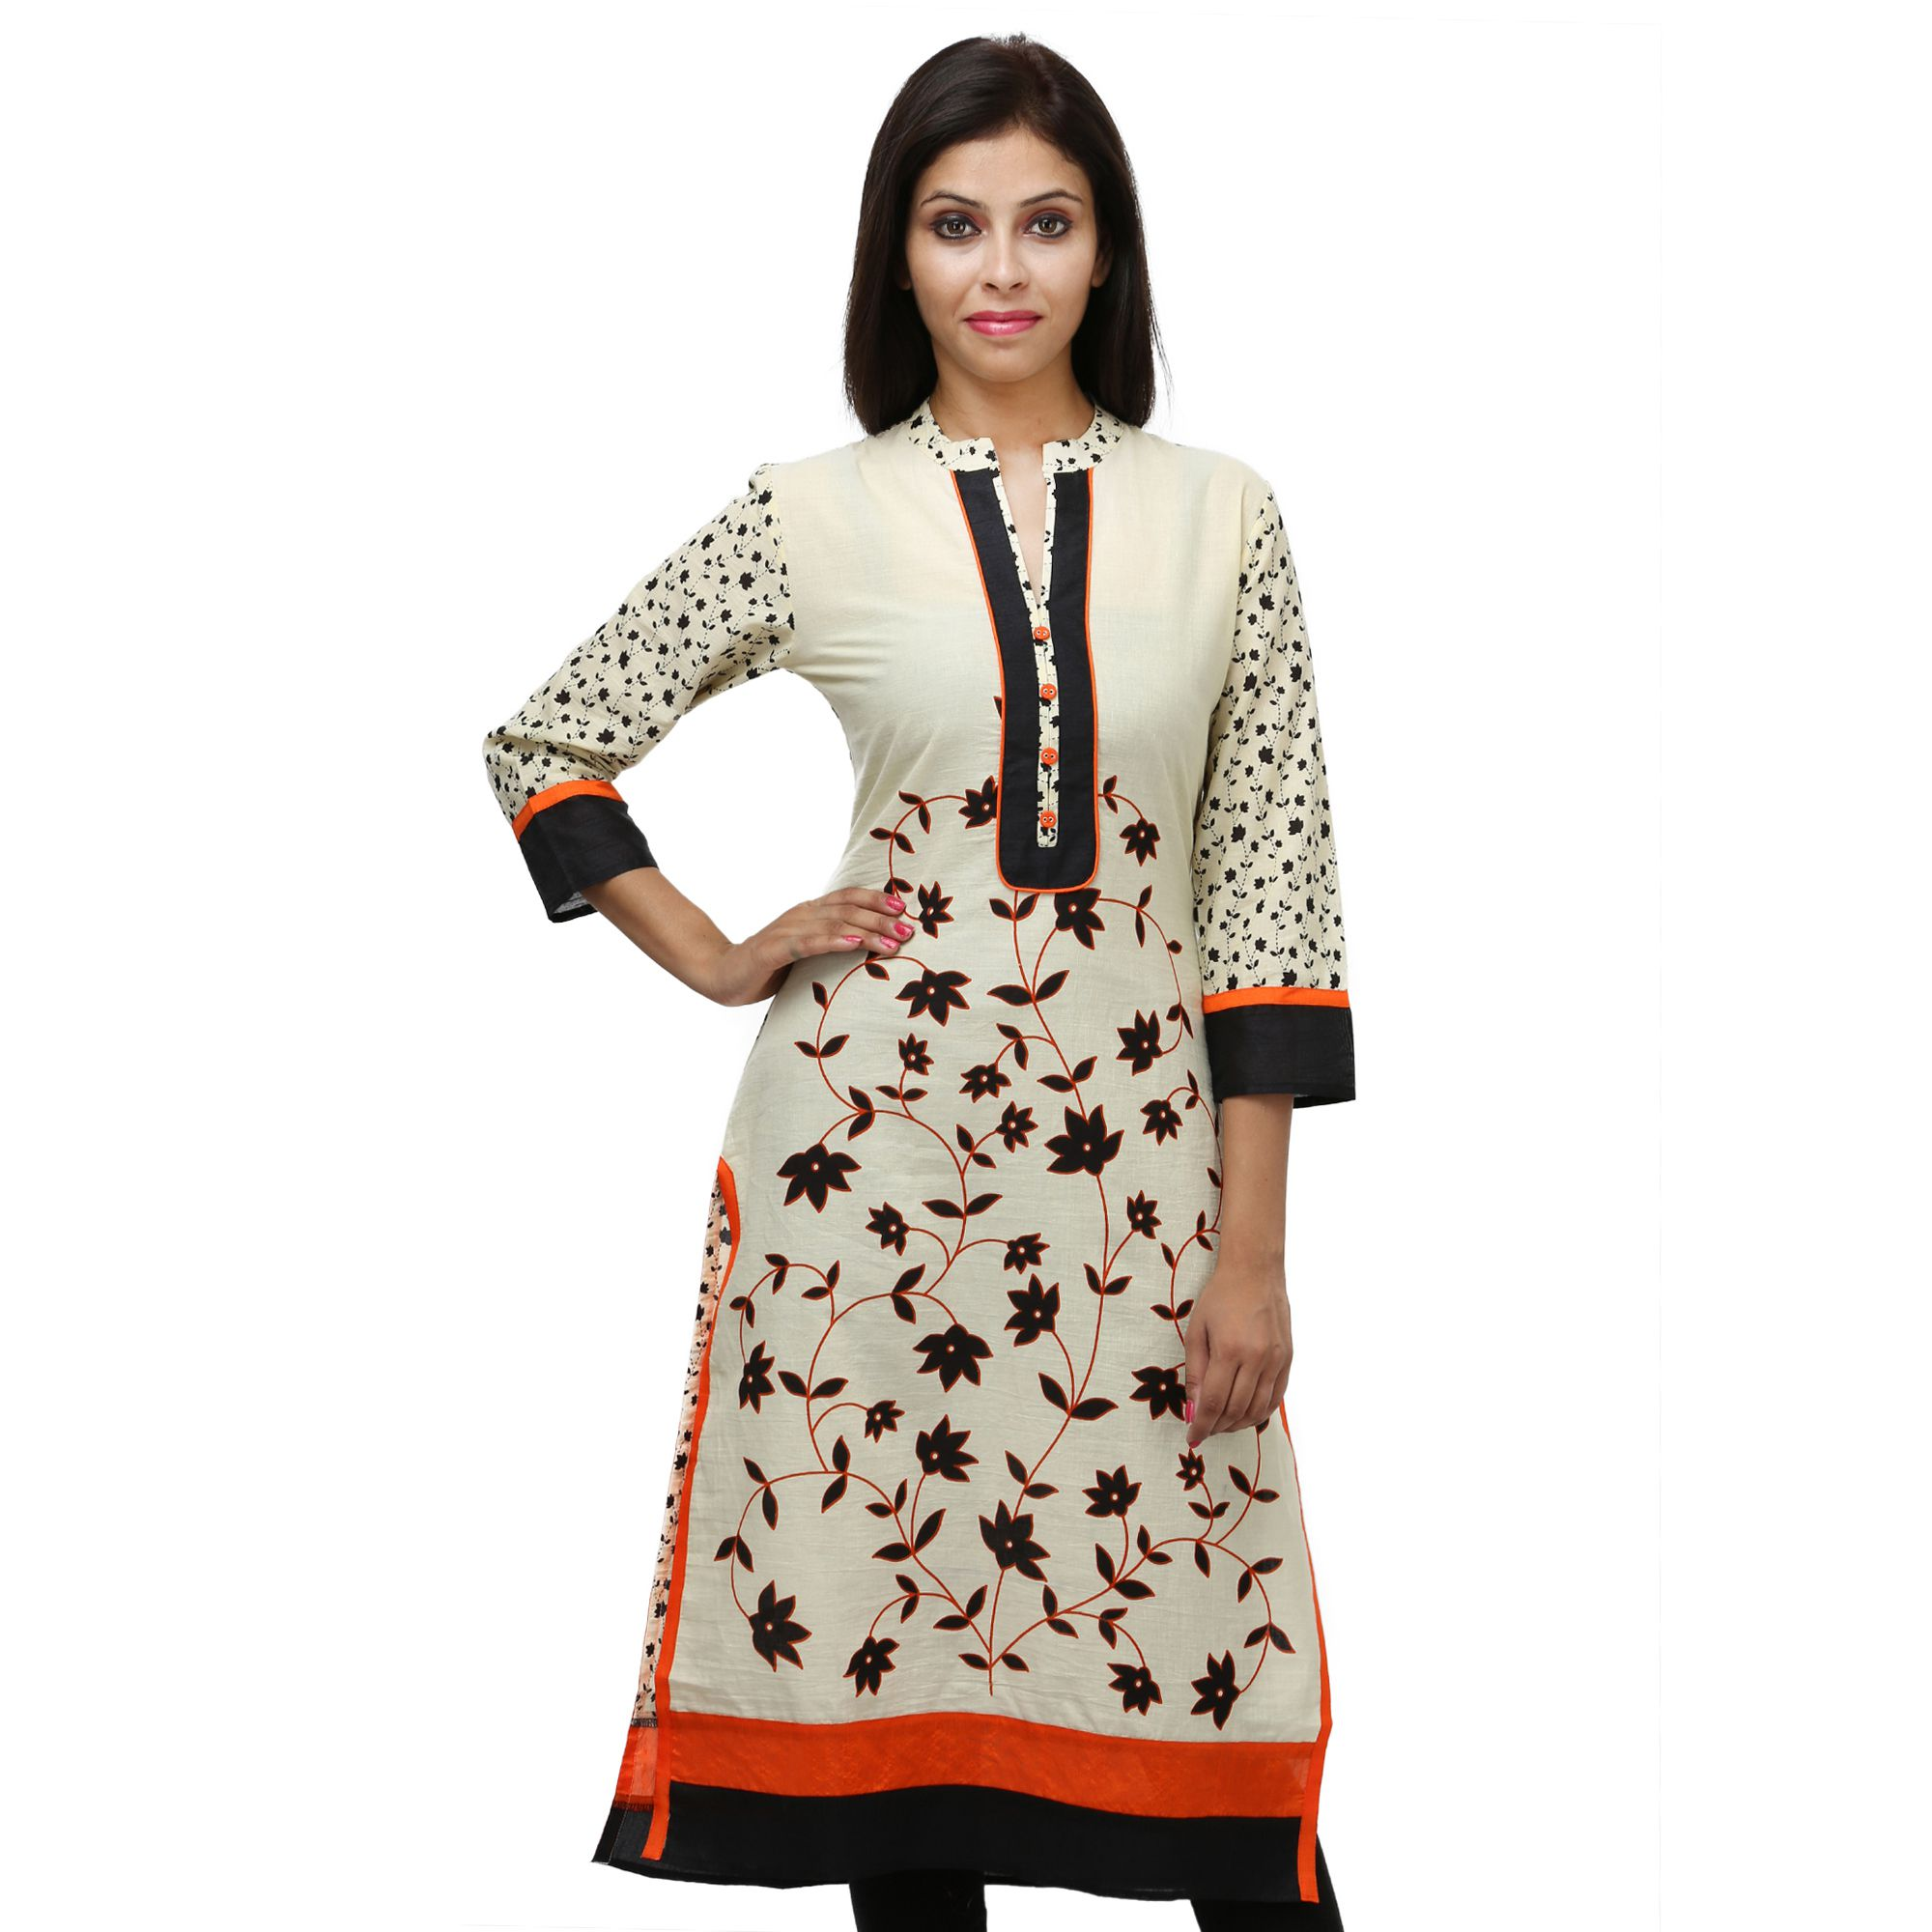 Nikks Fashions Off White Cotton Straight Kurti